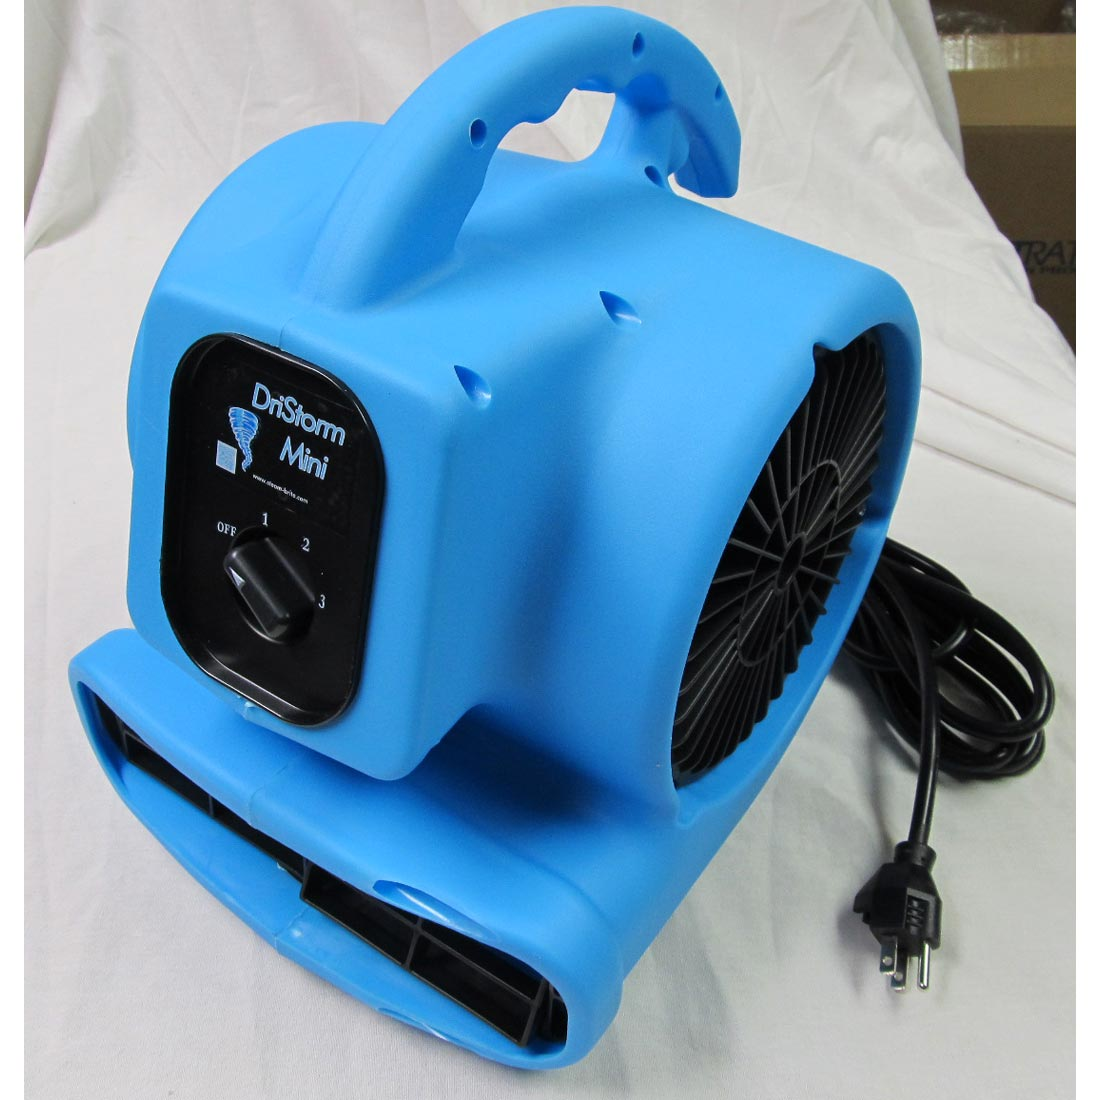 -DriStorm Mini Air Mover 2.3Amp, 1/5 HP, 3 Speed, GFCI AC085P230AT Blower Micro Fan Small Compact